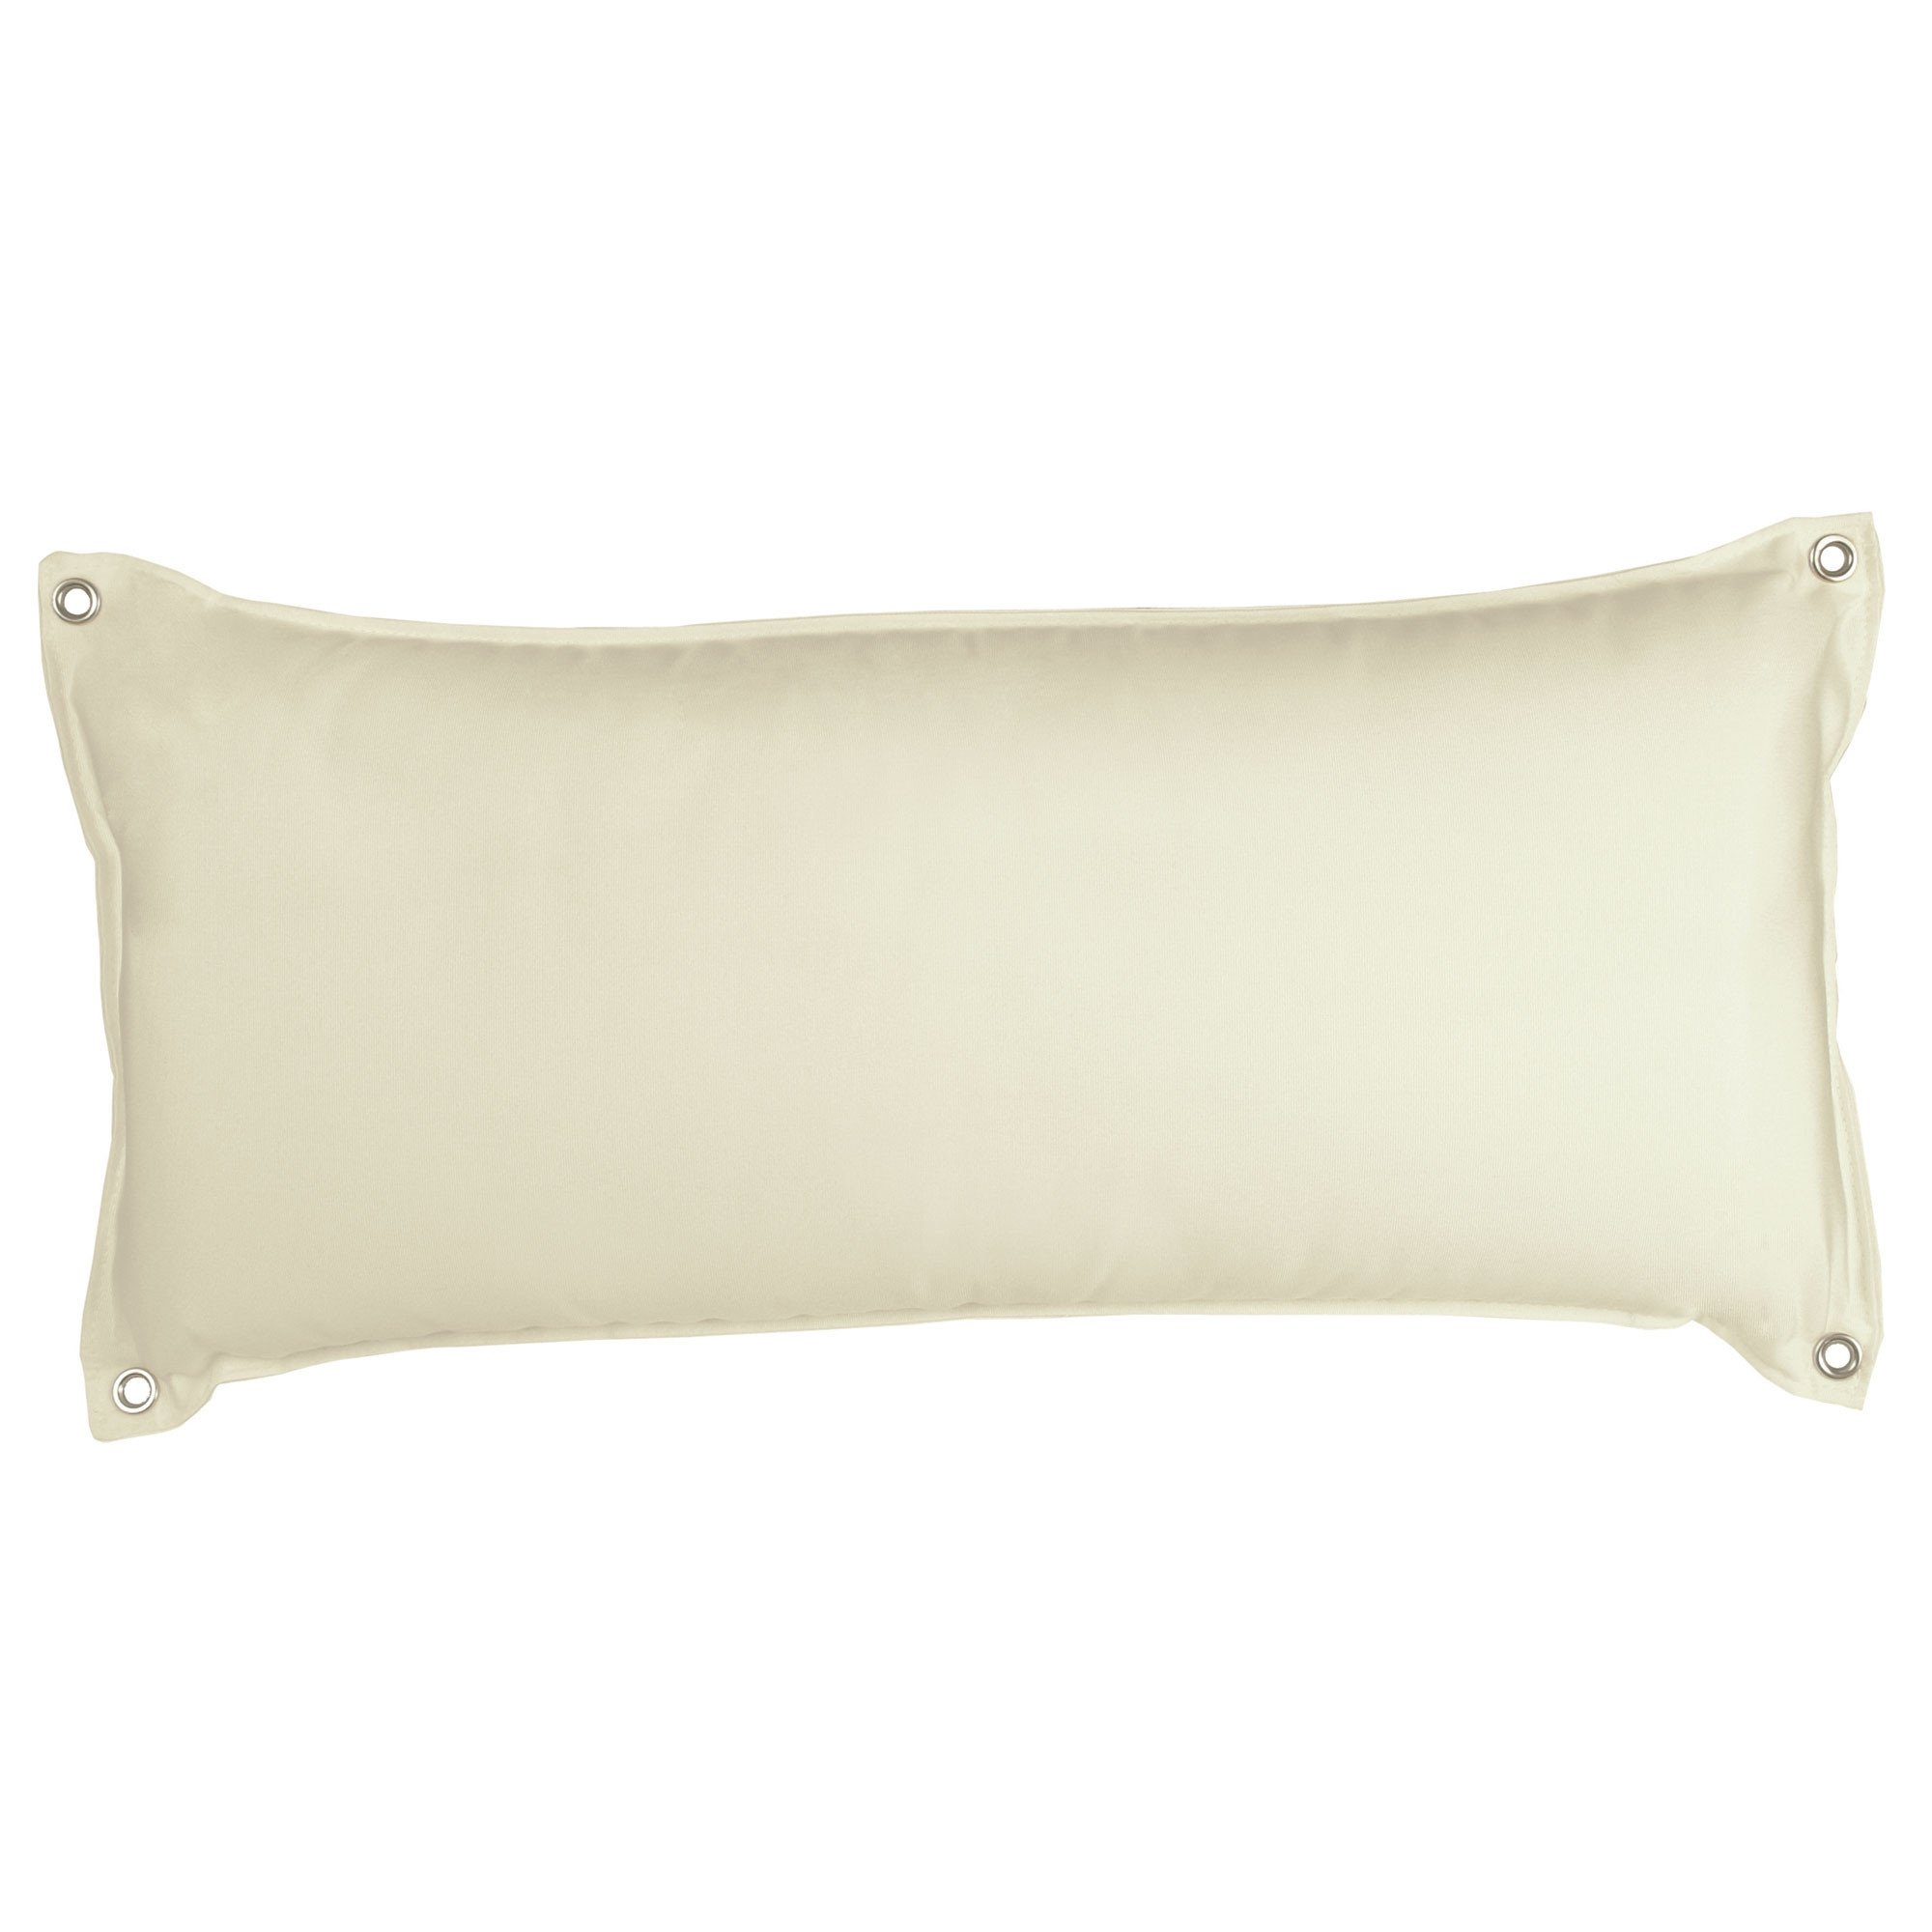 Hammock Pillow - Pawleys Island by Pawley's Island